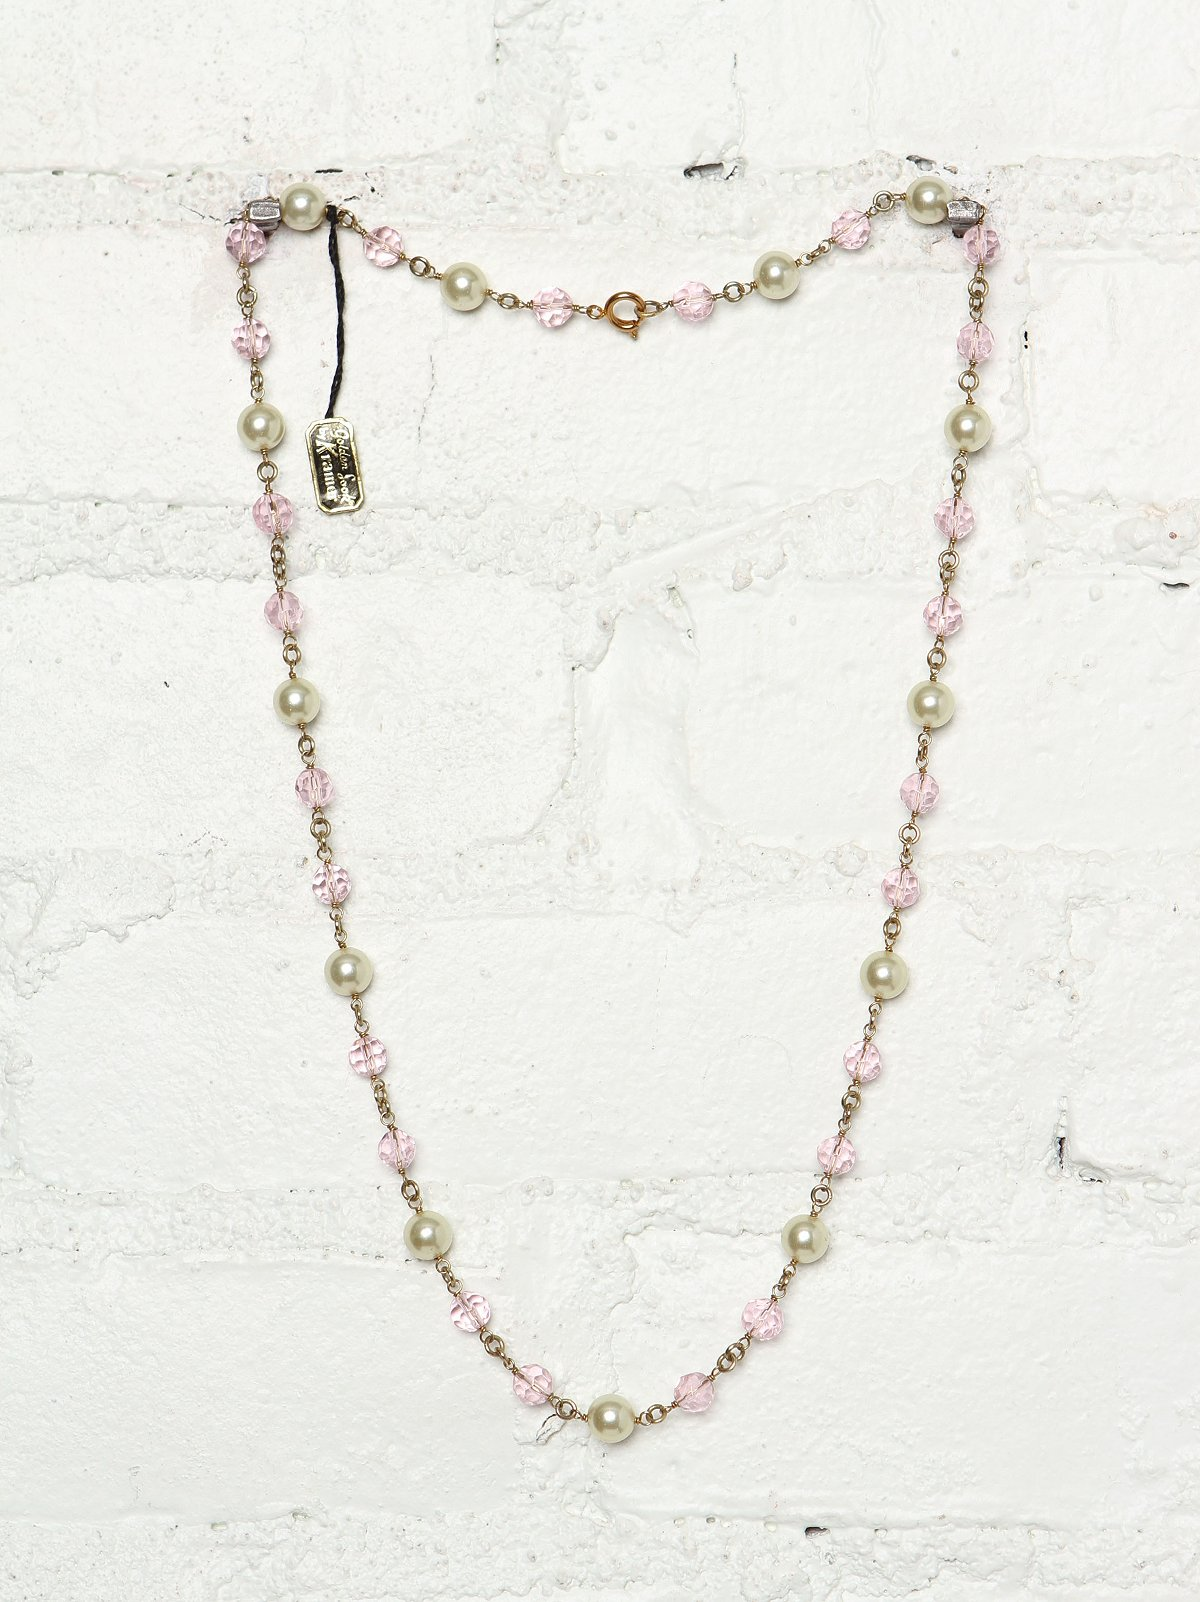 Vintage Costume Bead and Pearl Necklace